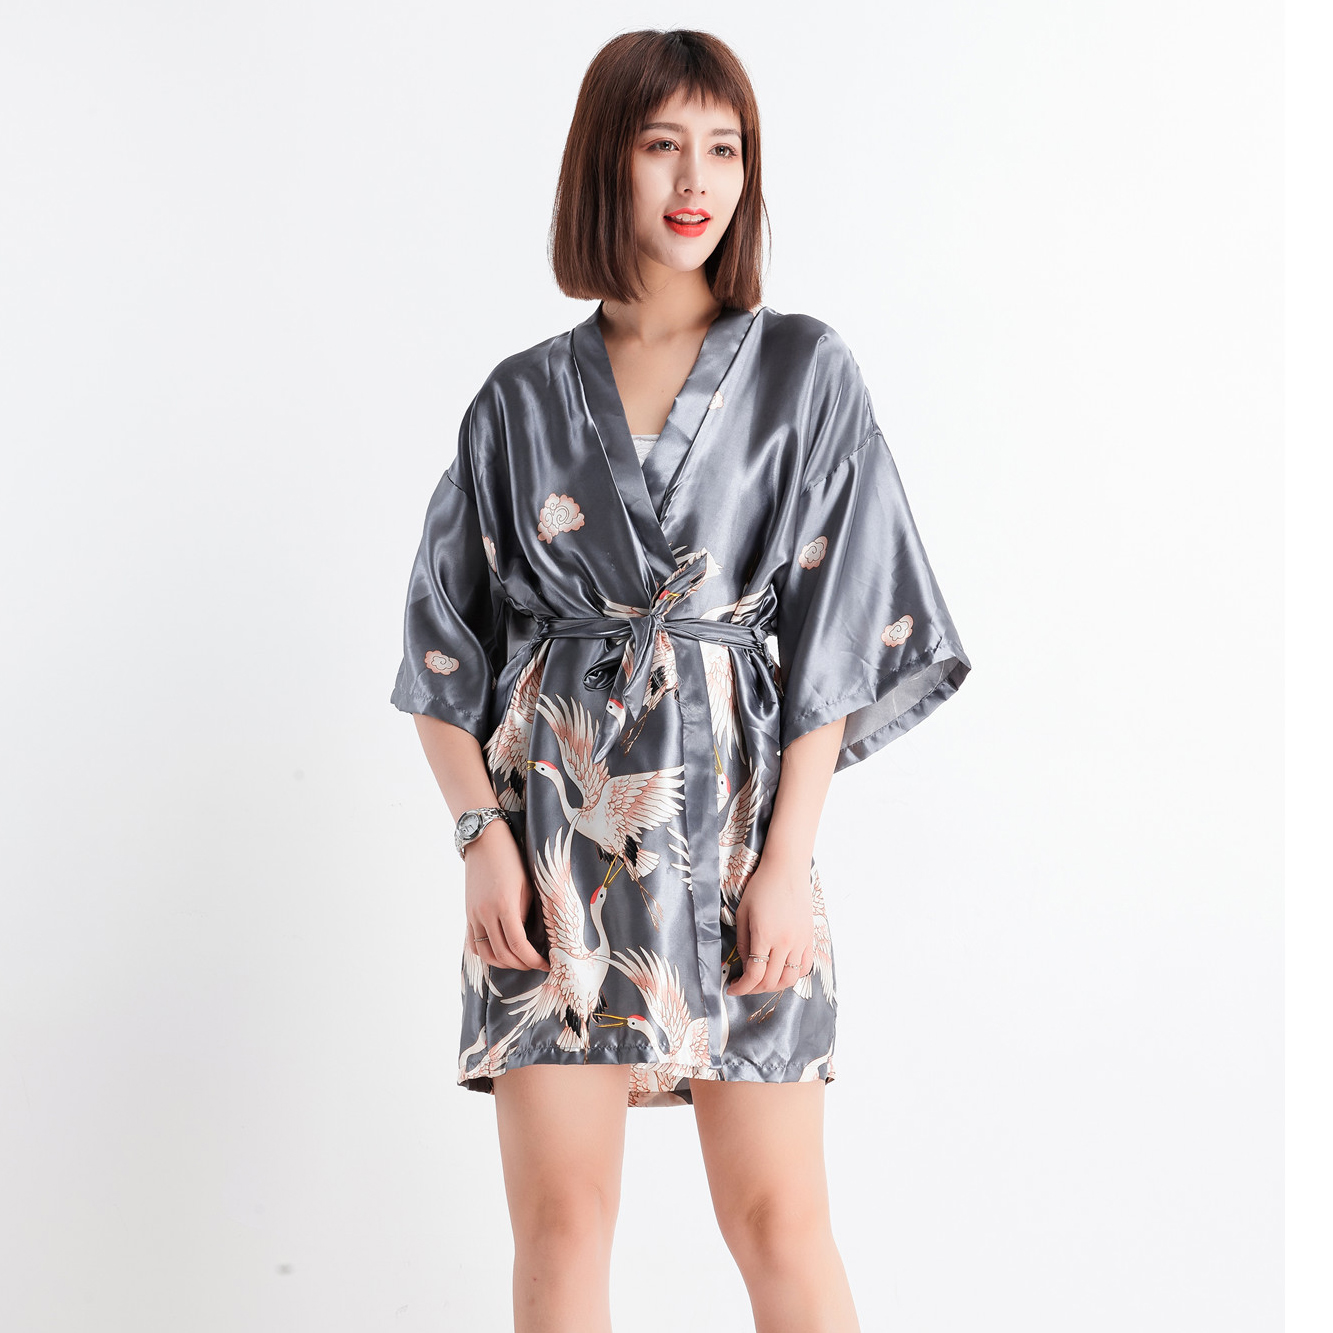 0d028550a3 Women Rayon Sleepwear New Printed Robe Lady Dressing Gown Casual Kimono  Bathrobe Summer Nightdress Silky Nightgown Plus Size -in Robes from Women's  ...